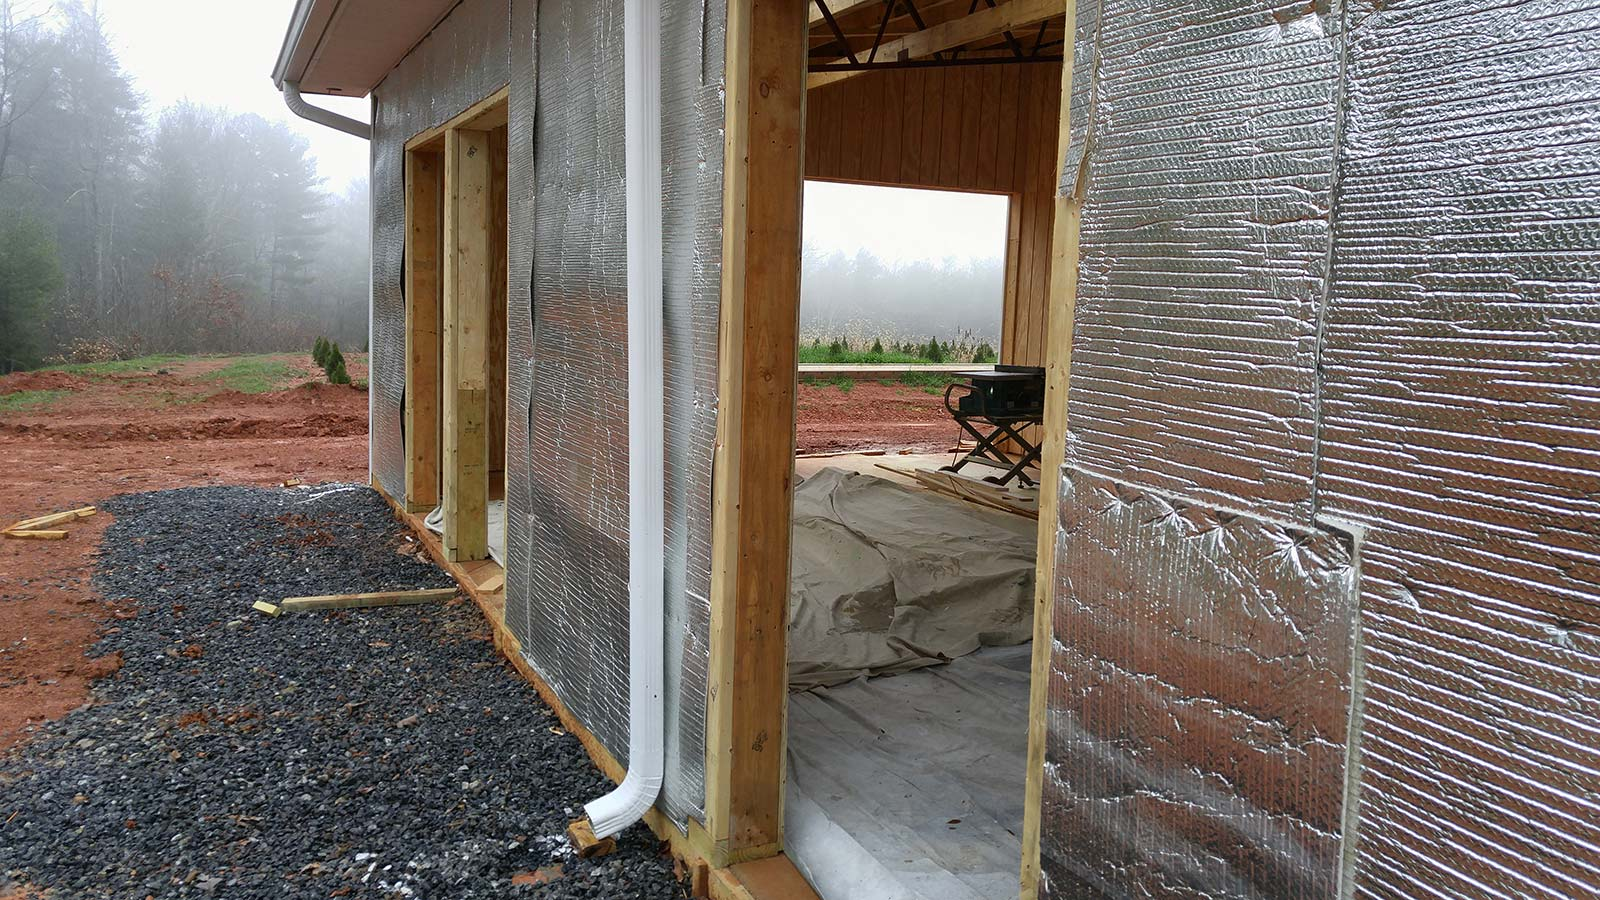 View of insulation being added to outside of horse barn